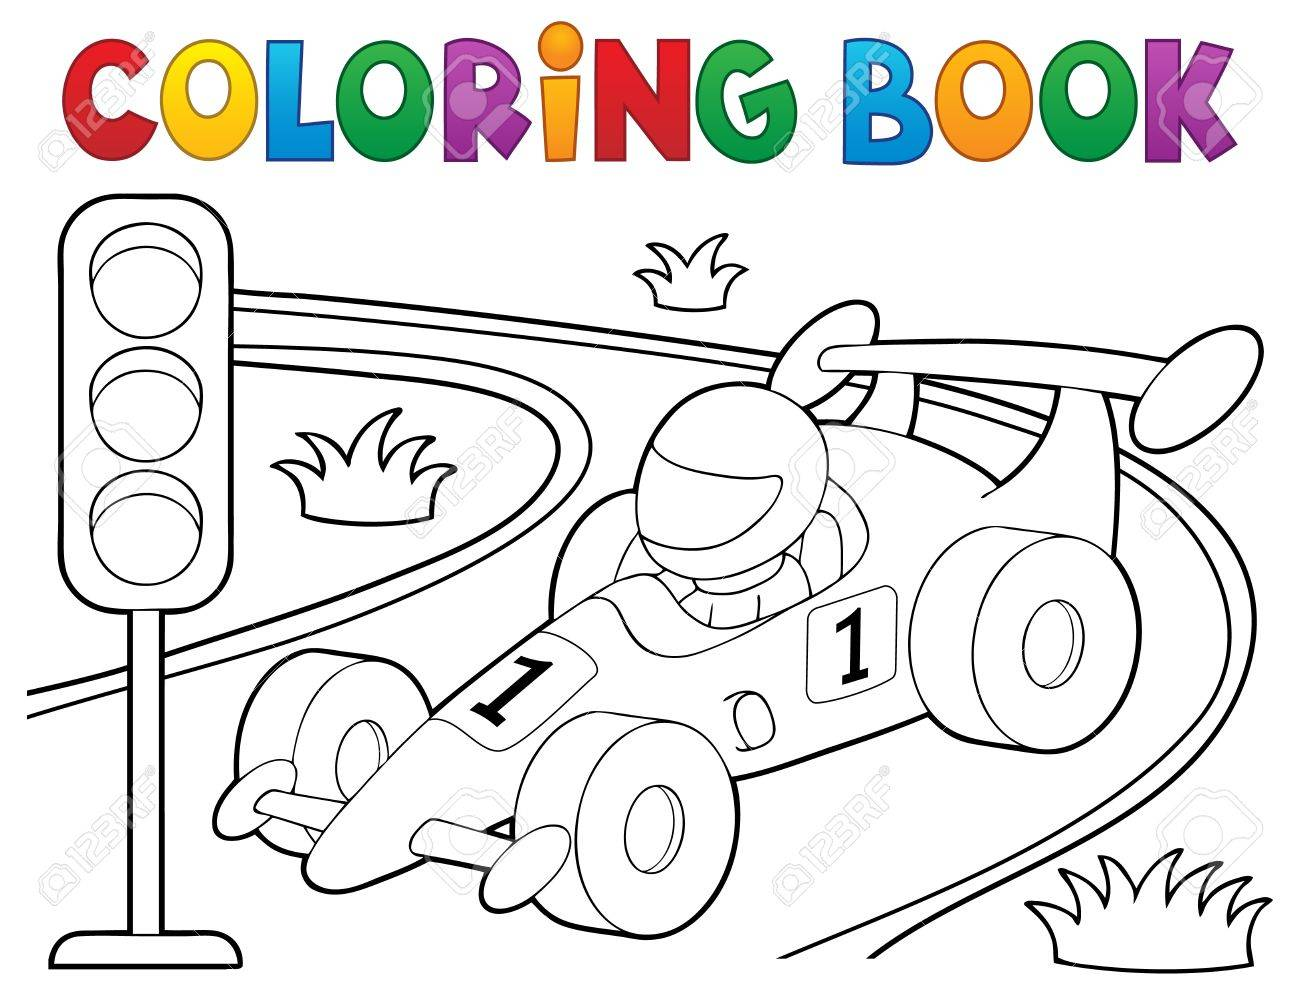 - Coloring Book Racing Car Theme 1 - Eps10 Vector Illustration